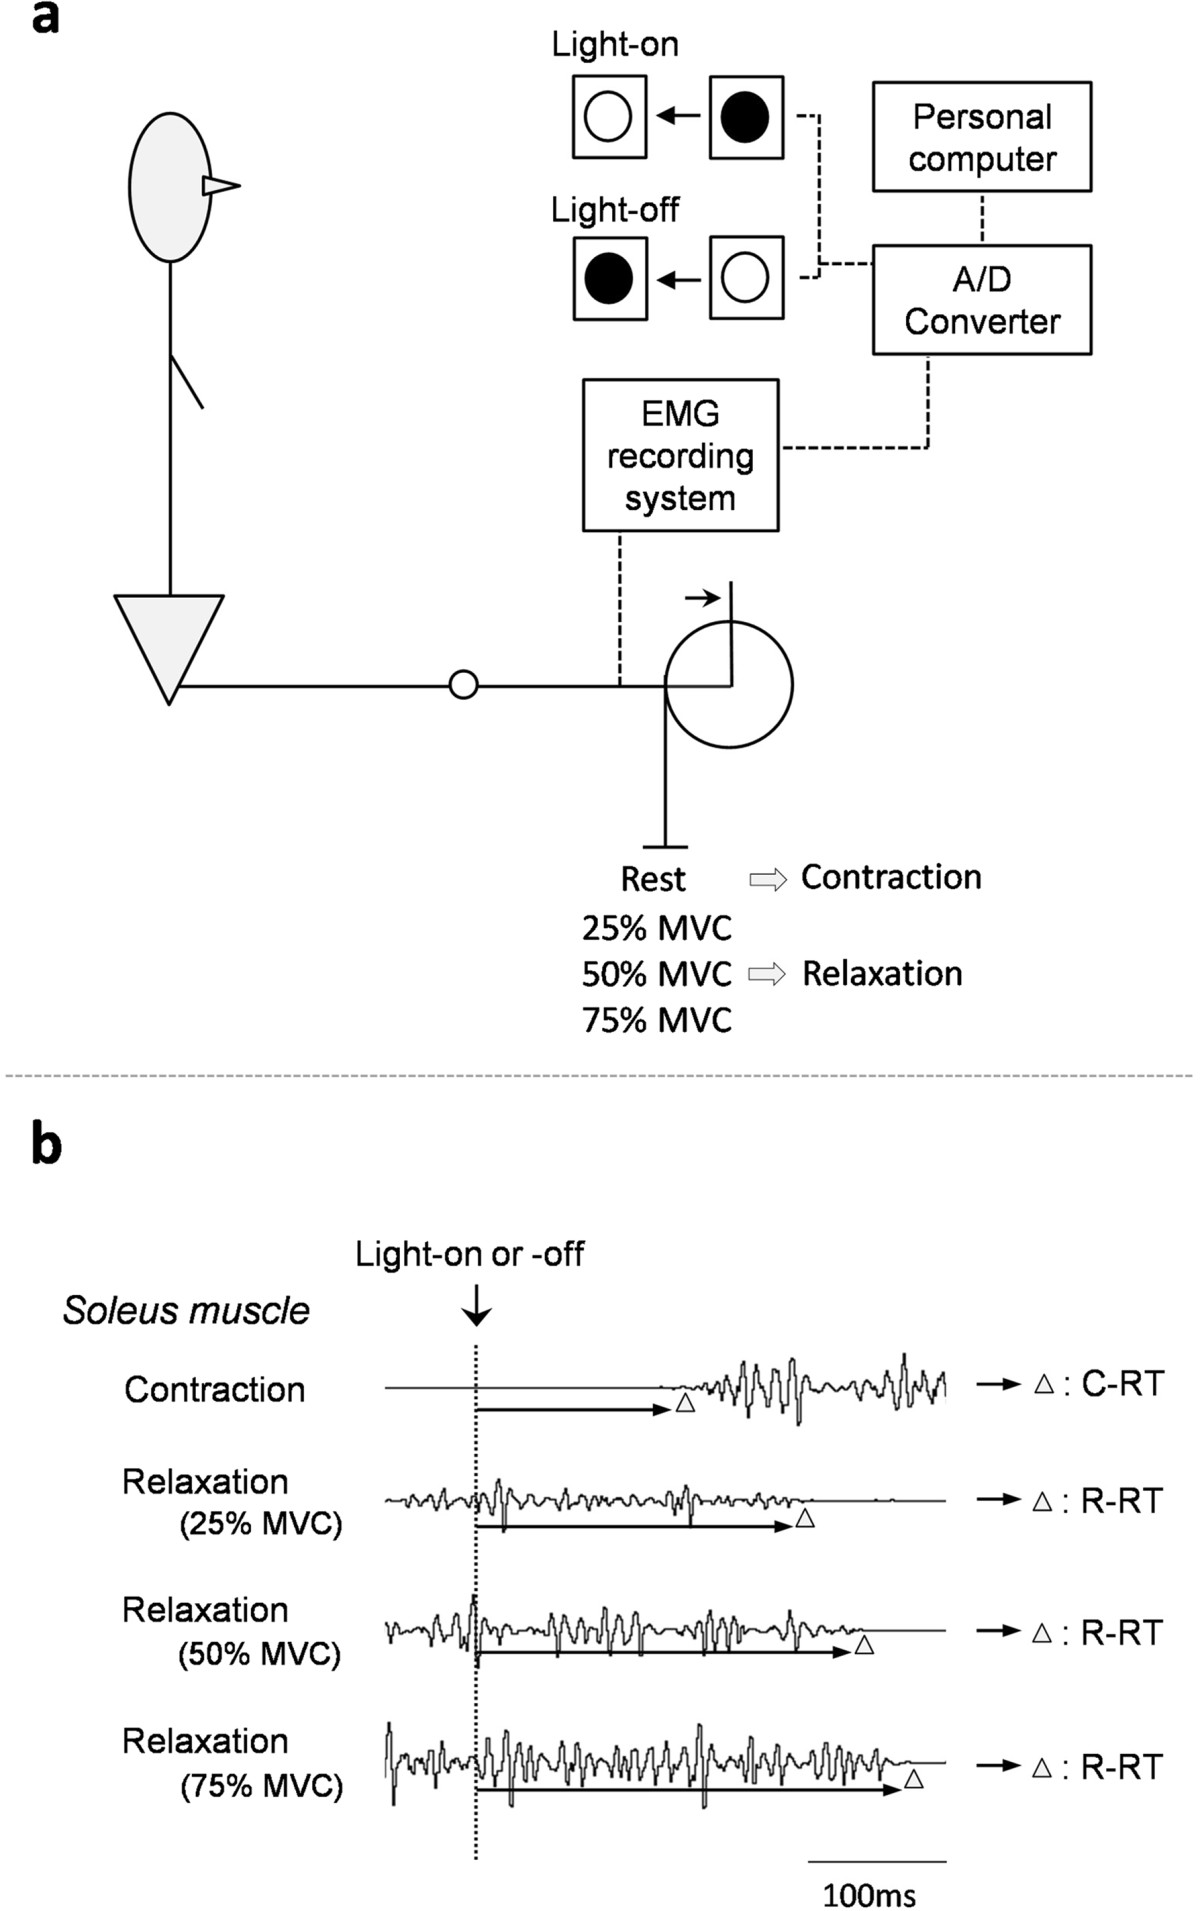 https://static-content.springer.com/image/art%3A10.1186%2F1880-6805-33-23/MediaObjects/40101_2014_Article_77_Fig1_HTML.jpg